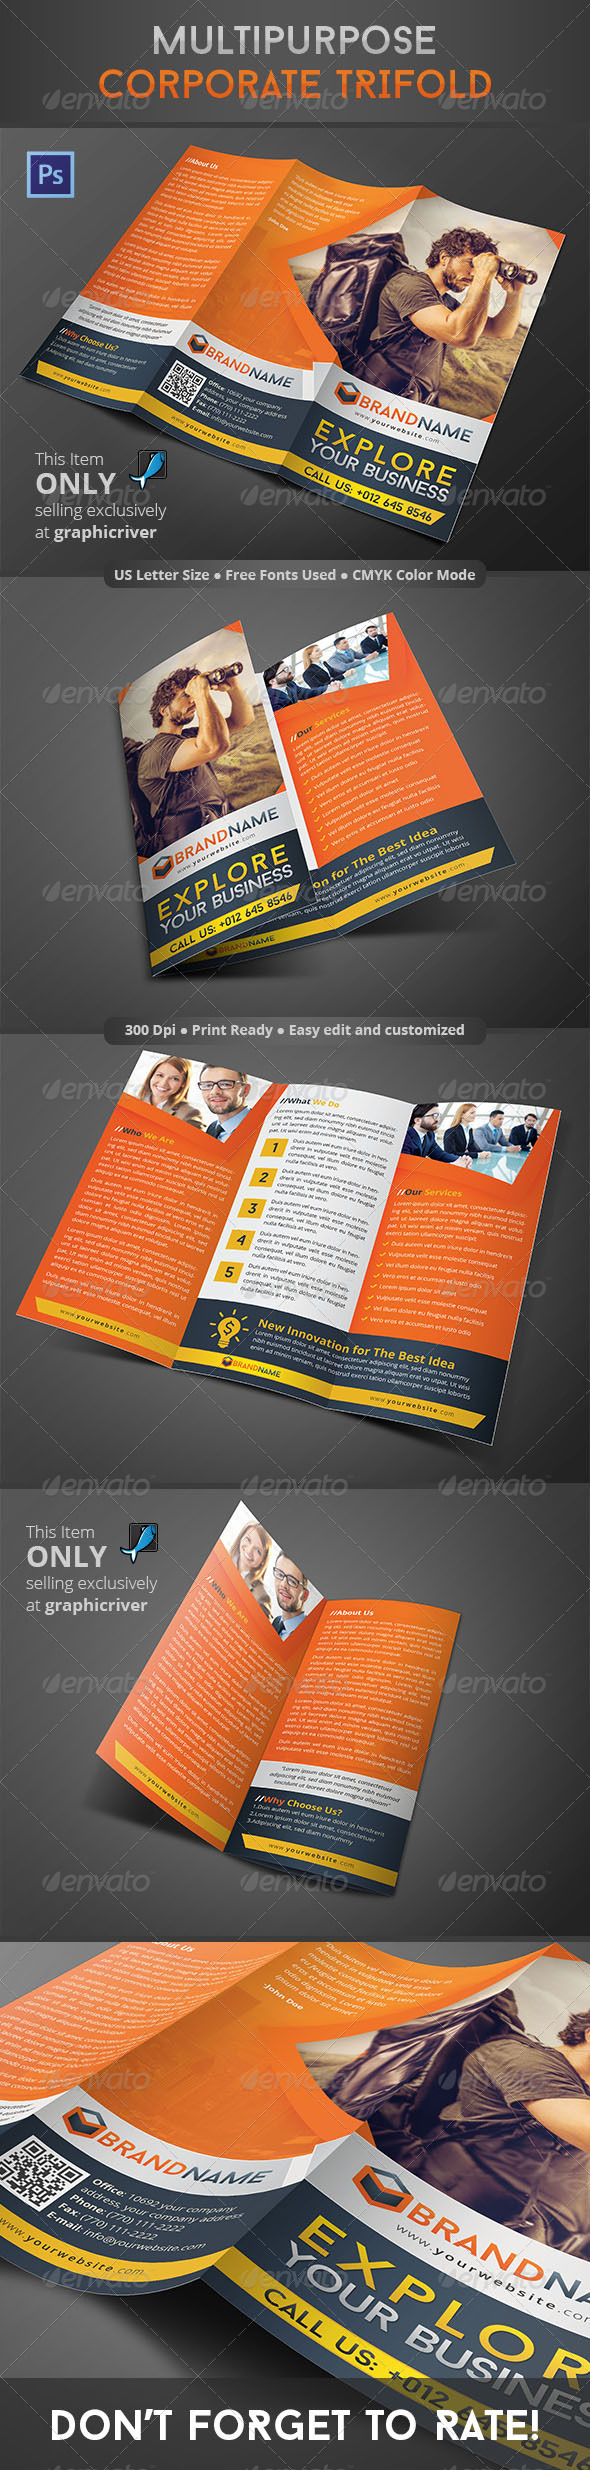 GraphicRiver Multipurpose Corporate Trifold 8764955